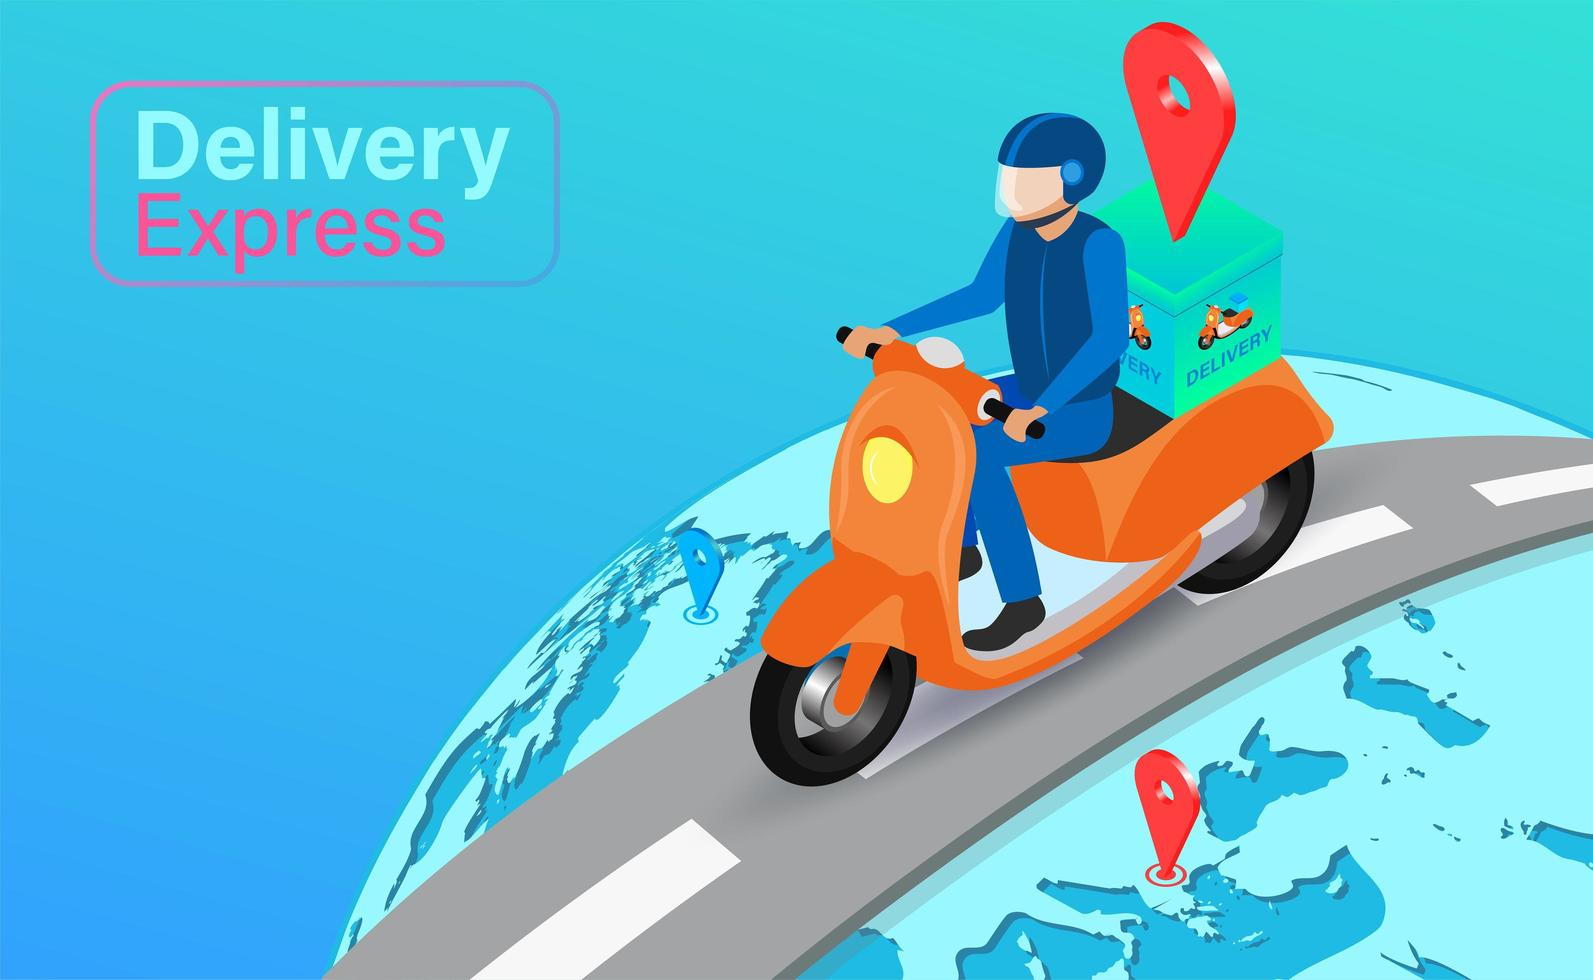 consegna globale in scooter con gps vettore